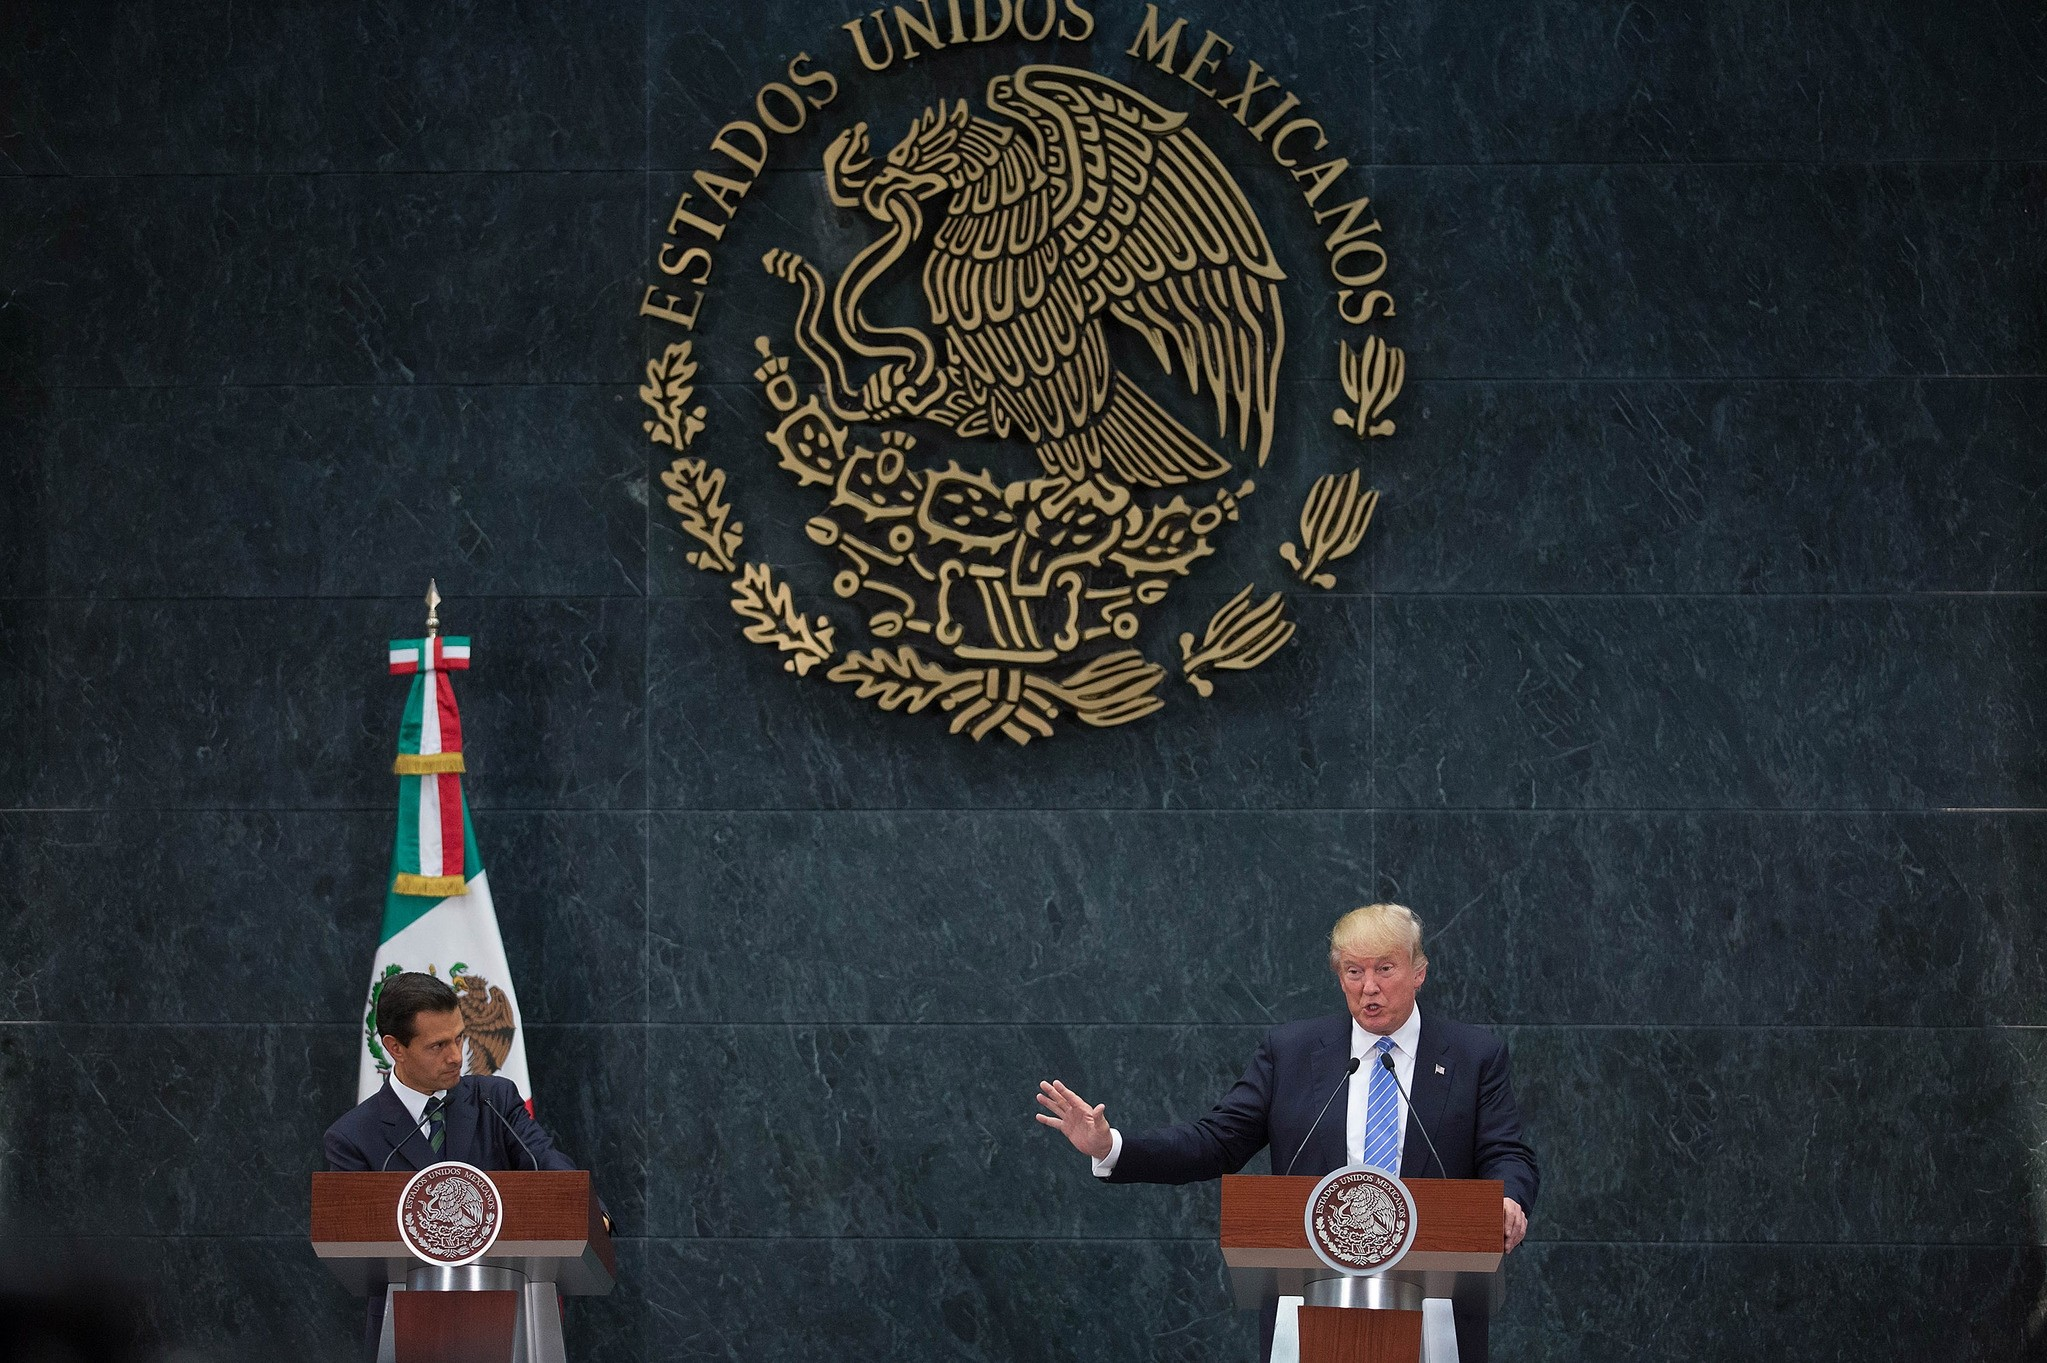 US presidential candidate Donald Trump (R) delivers a joint press conference with Mexican President Enrique Pena Nieto in Mexico City on August 31, 2016. (AFP Photo)